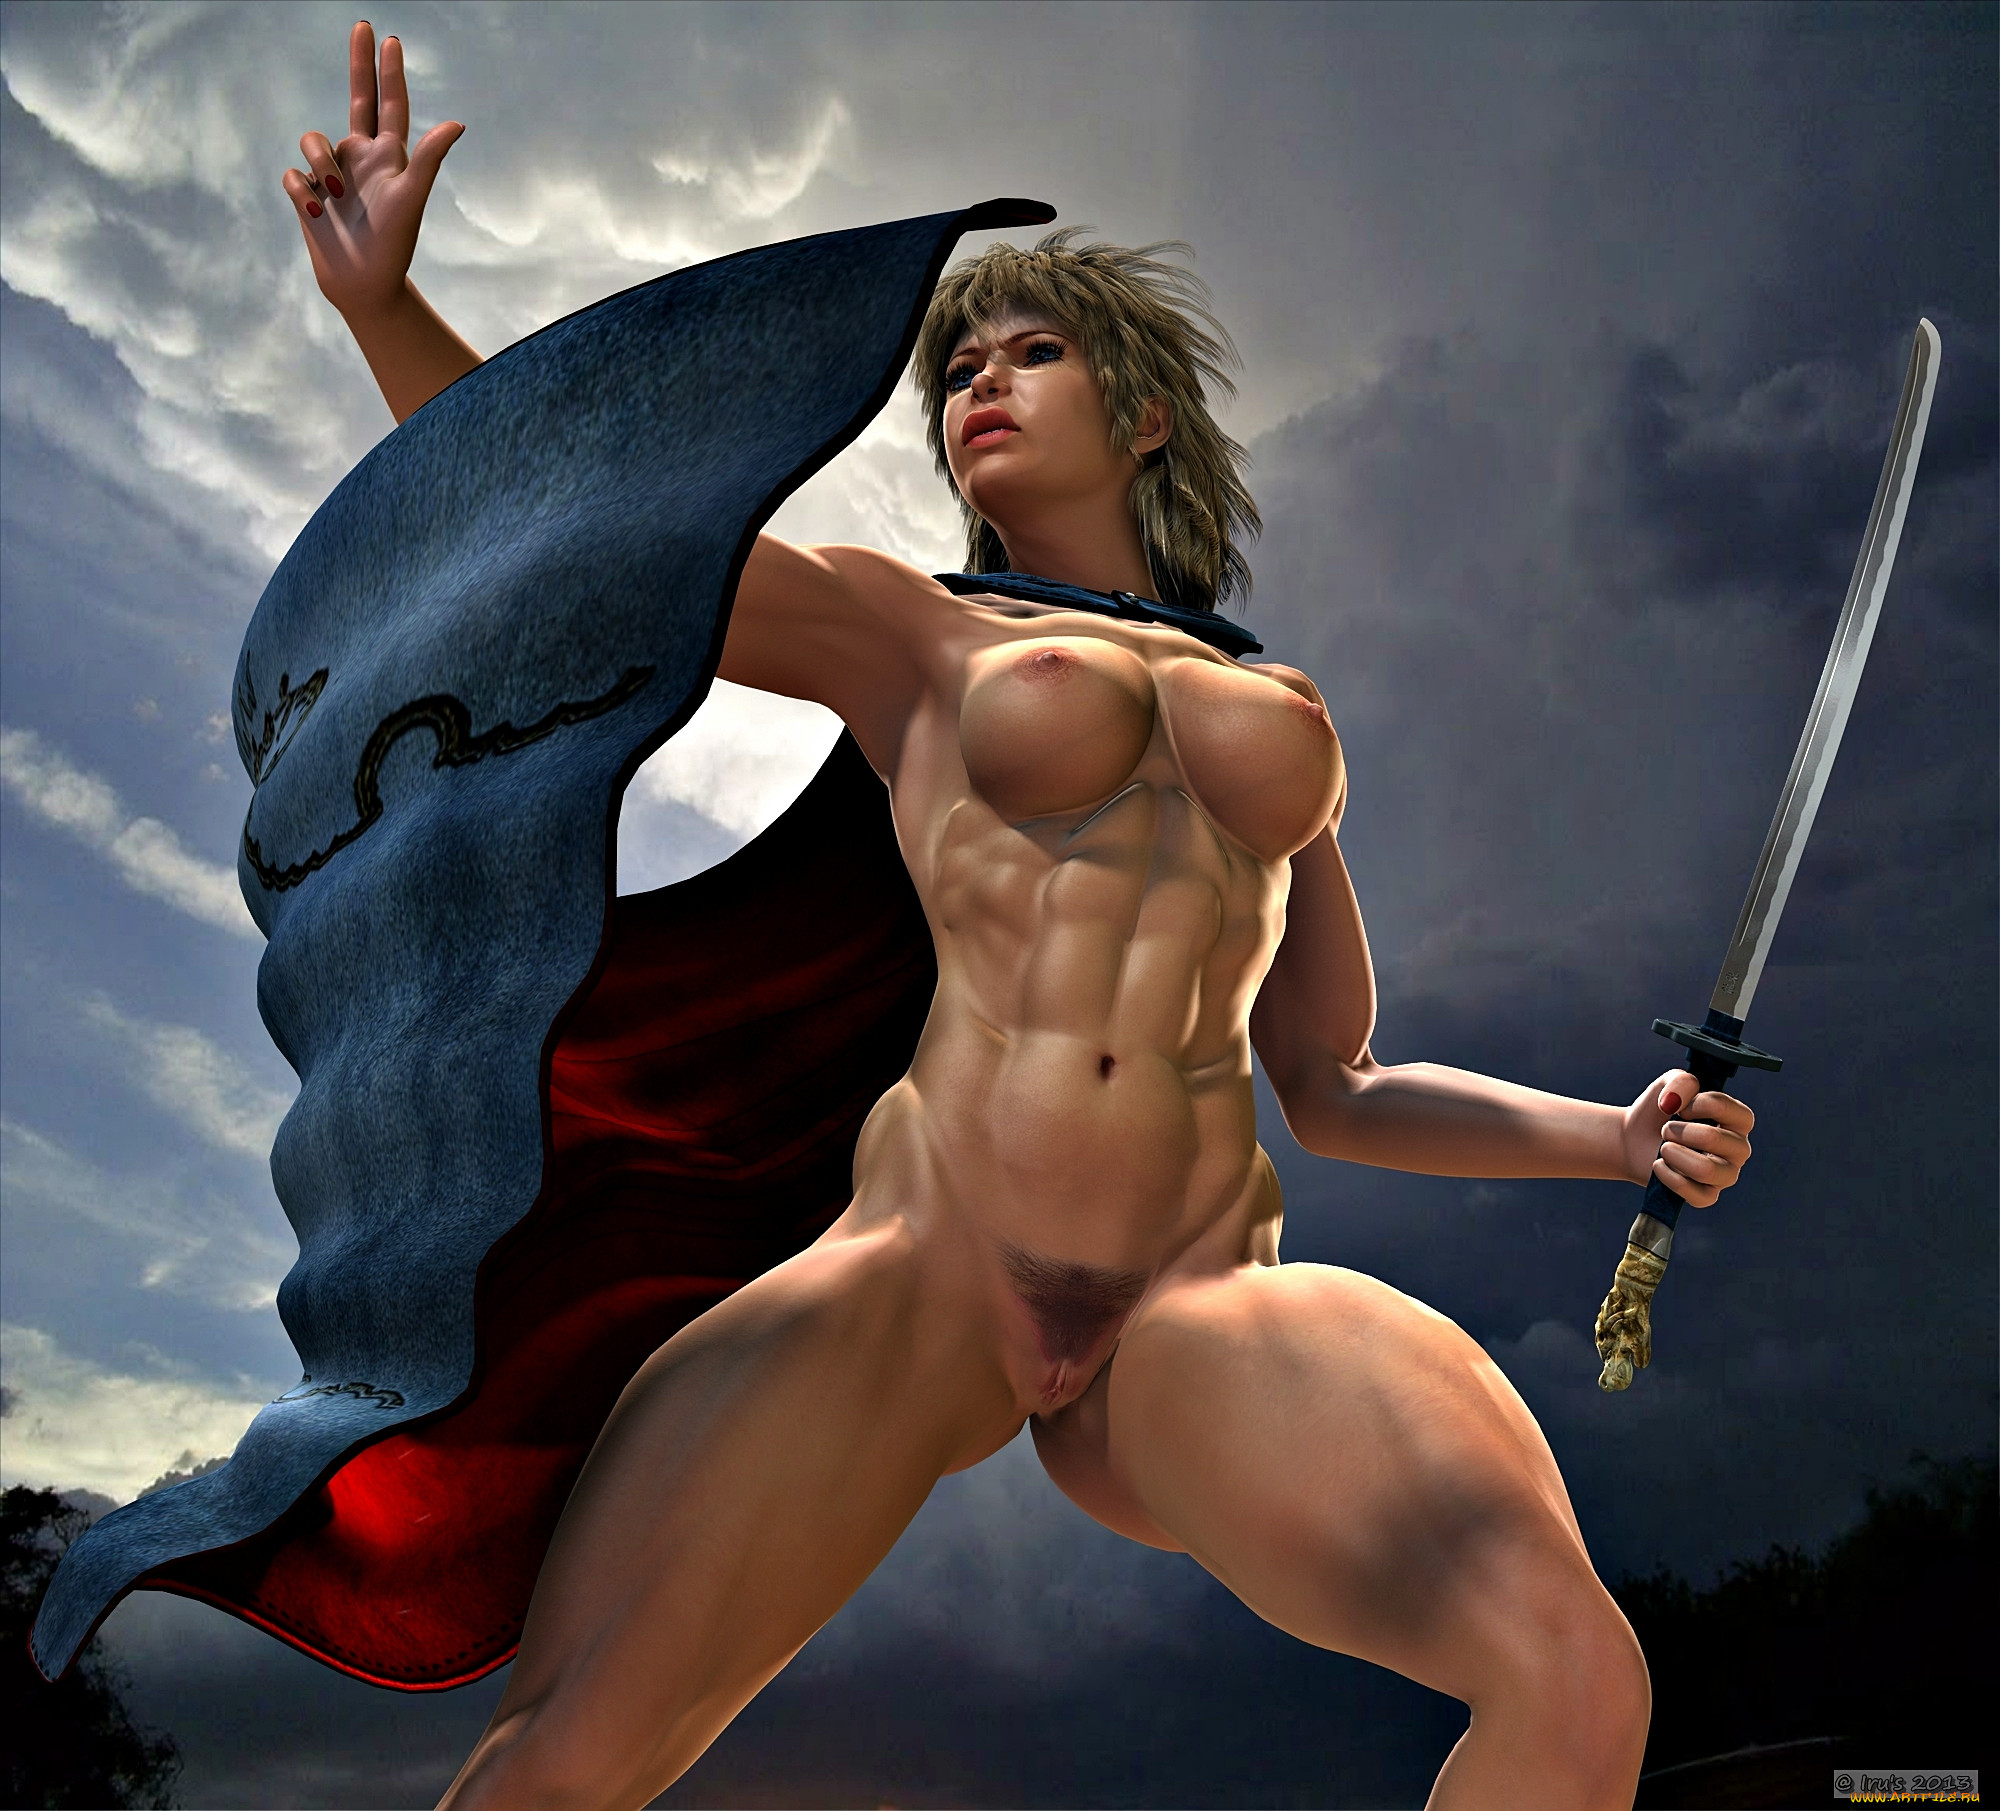 Nude warriors girls 3d wallpaper erotic woman